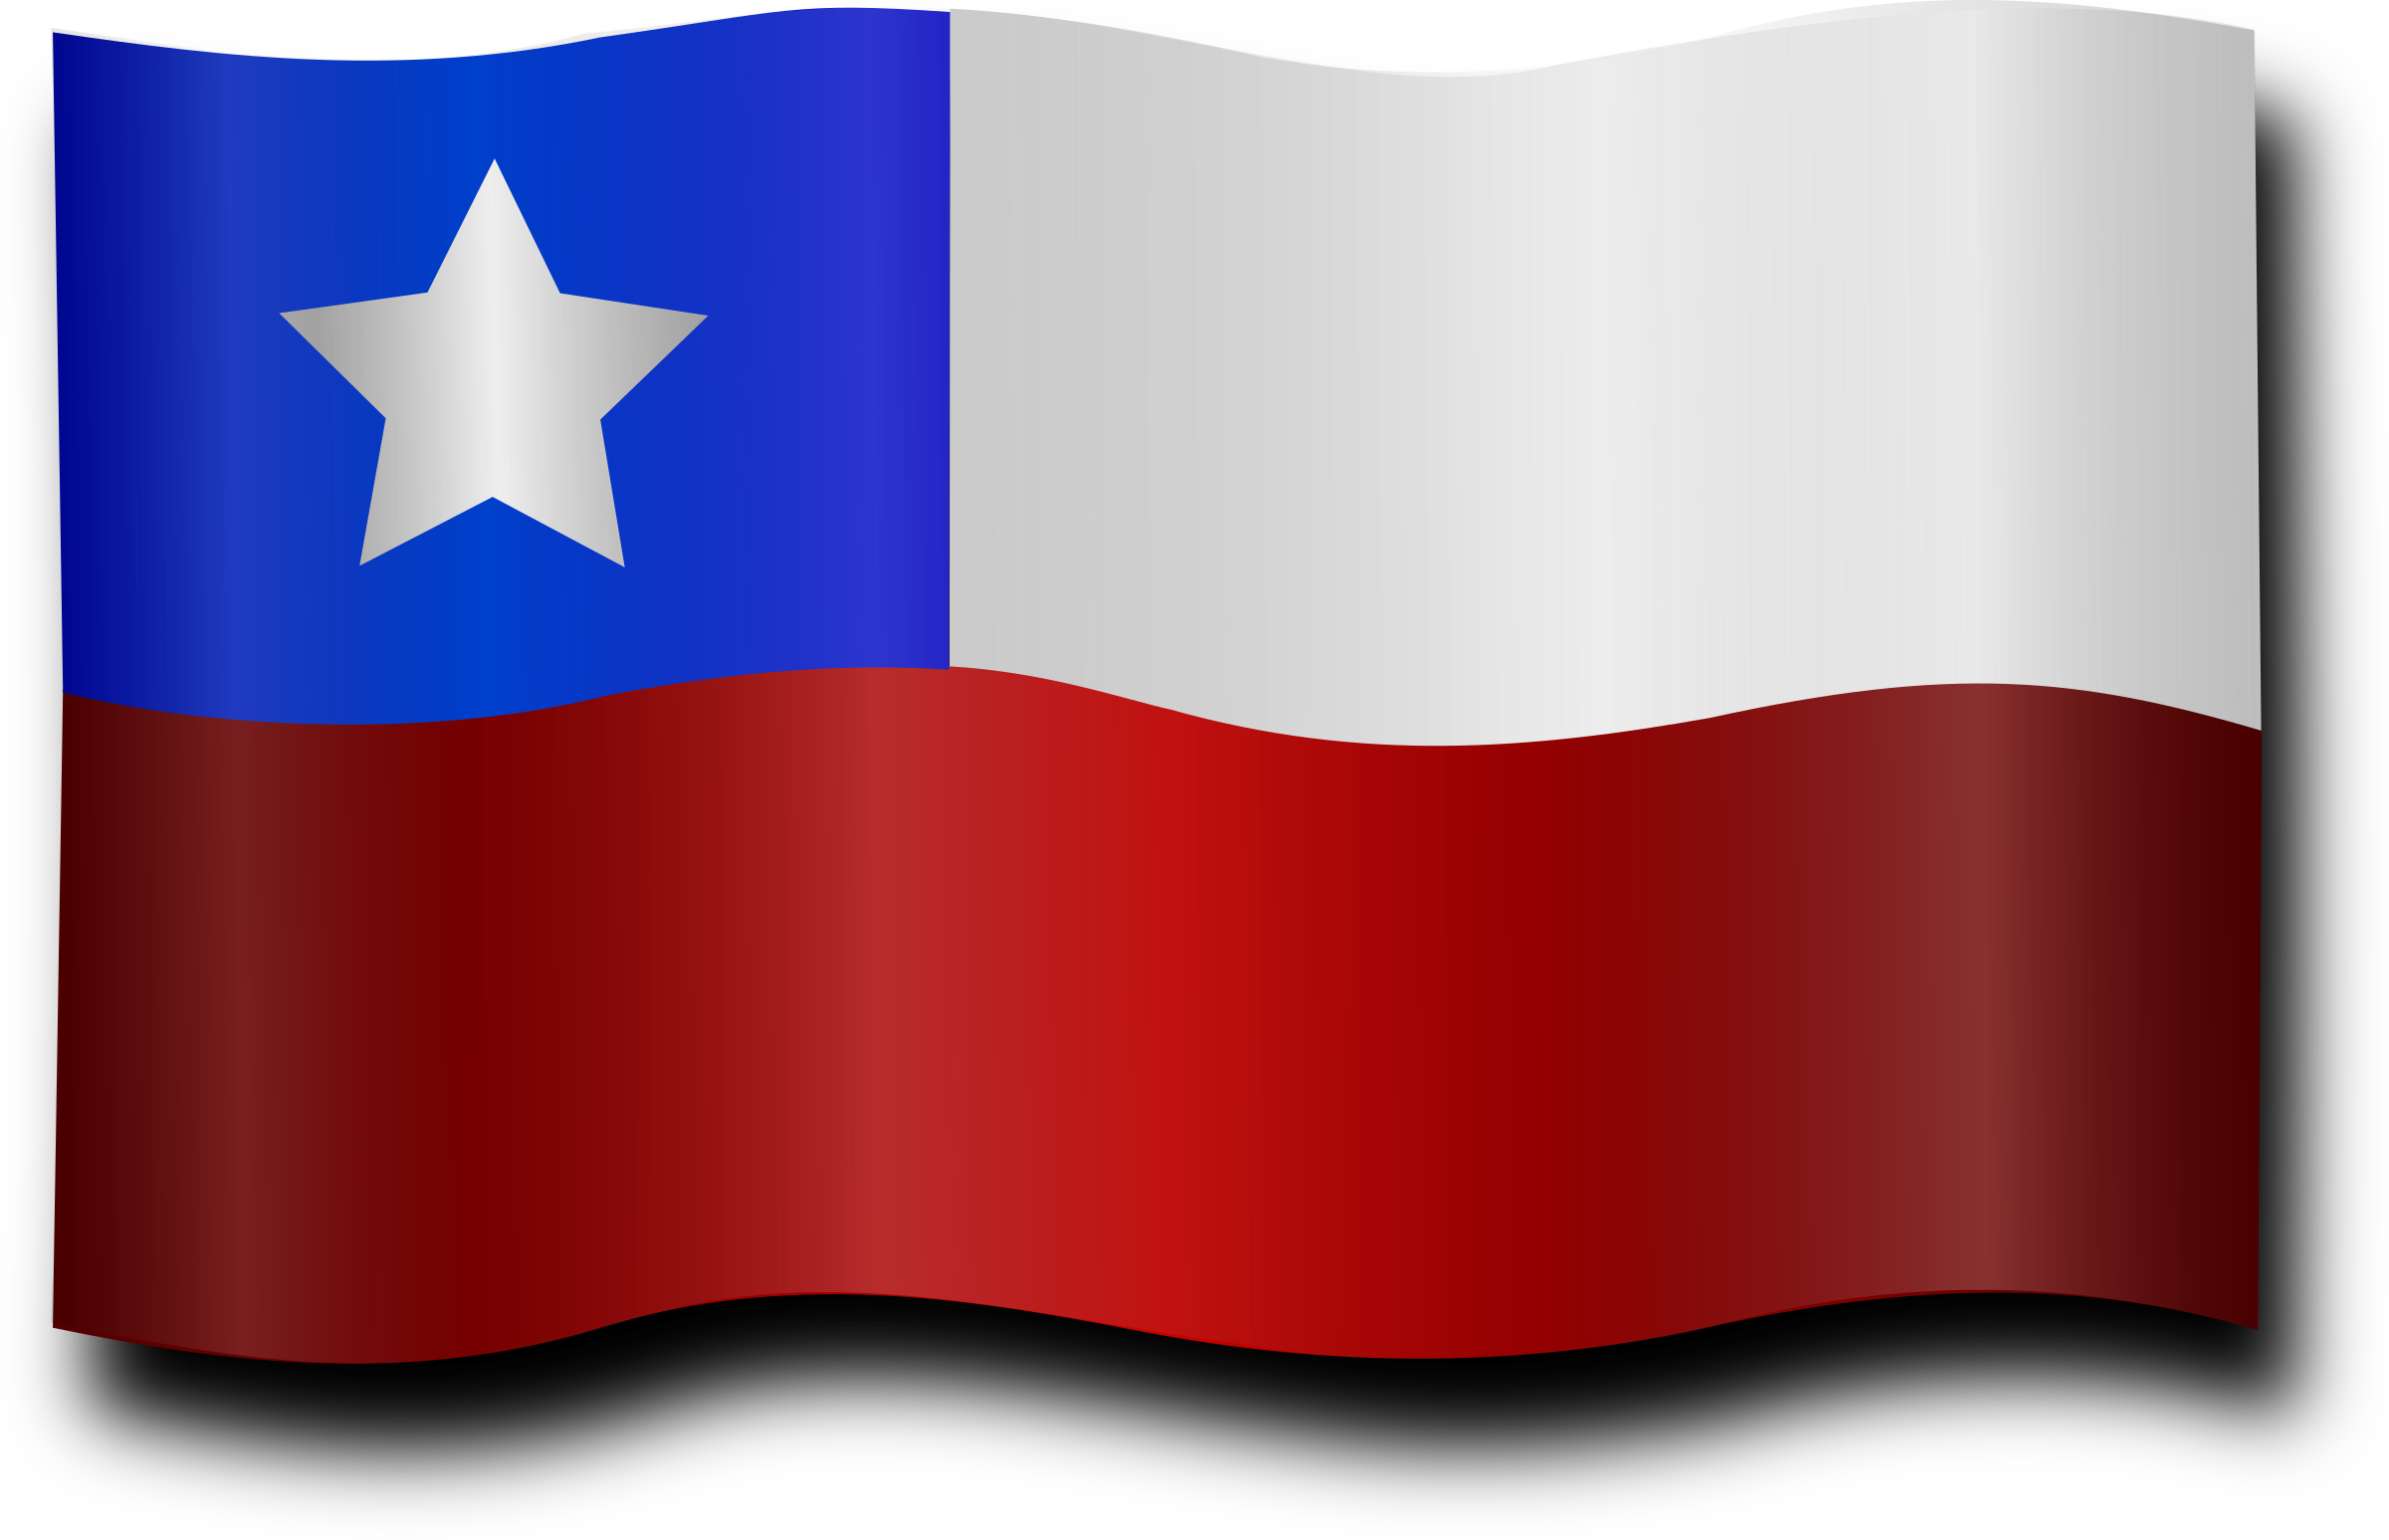 Chilean Flag 4 by Merlin2525